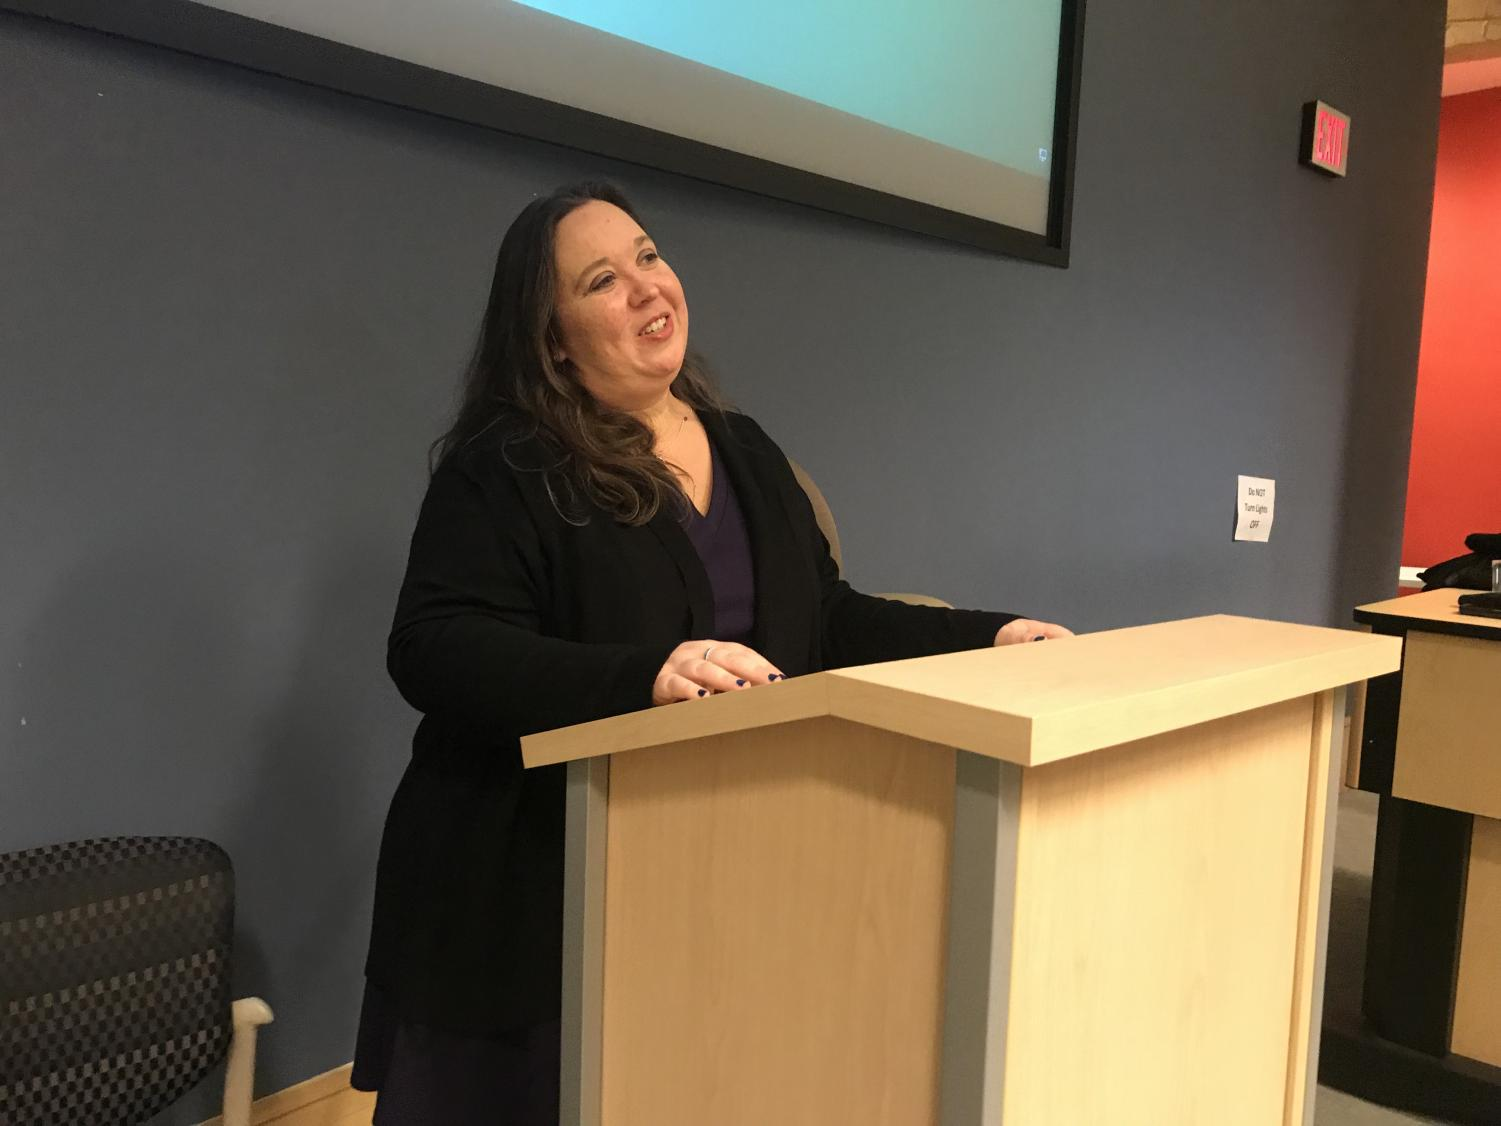 Marshall psychology professor April Fugett-Fuller discussed how frustration can be transformed into beauty during a lecture in Drinko Library Nov. 14.